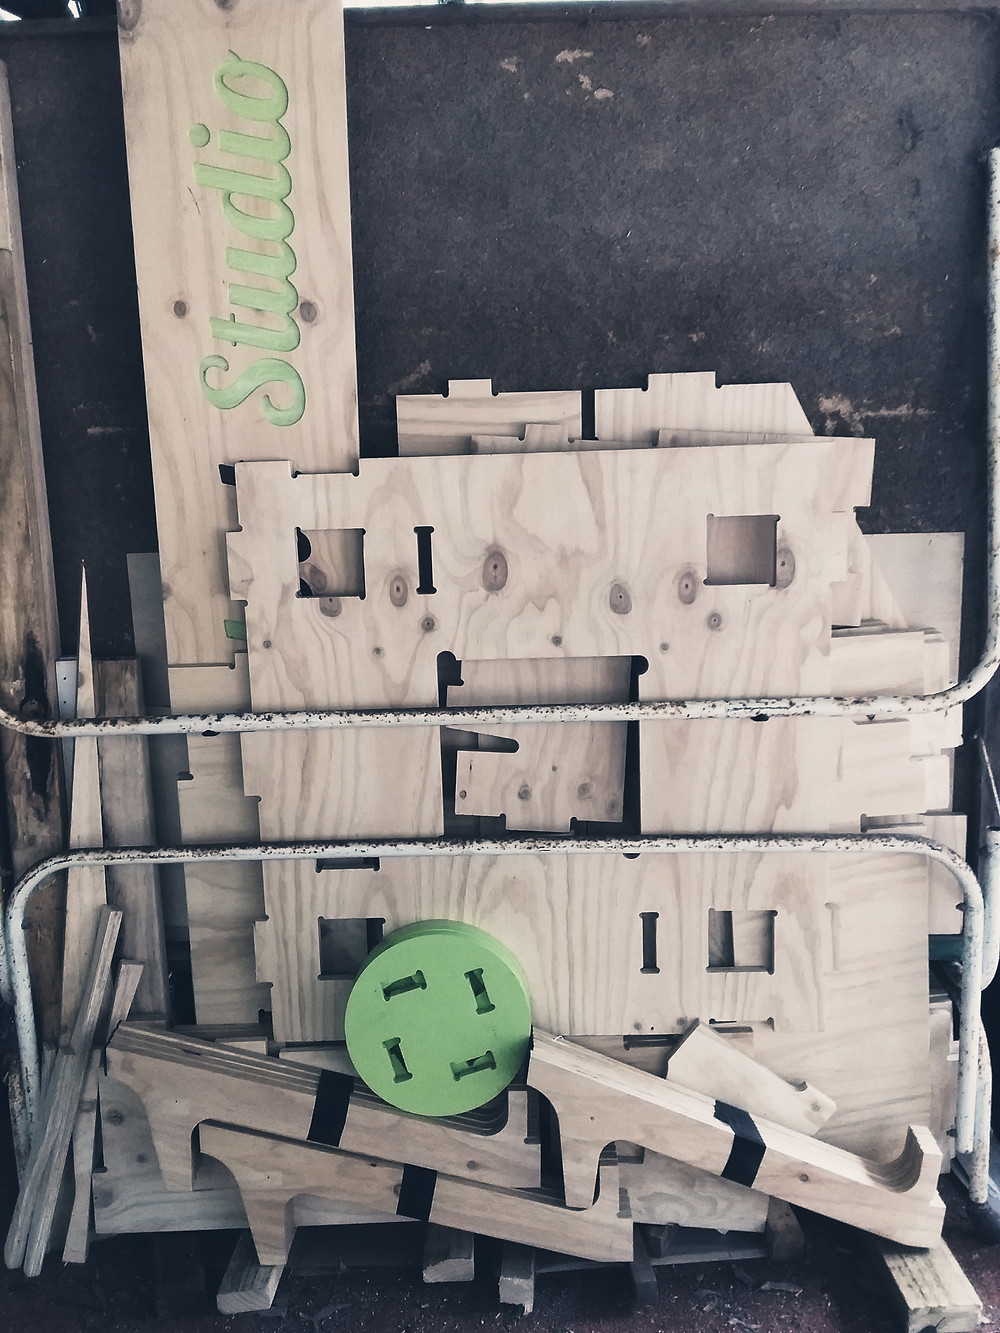 An event display made of plywood machined on a CNC cutter is packed down and in storage